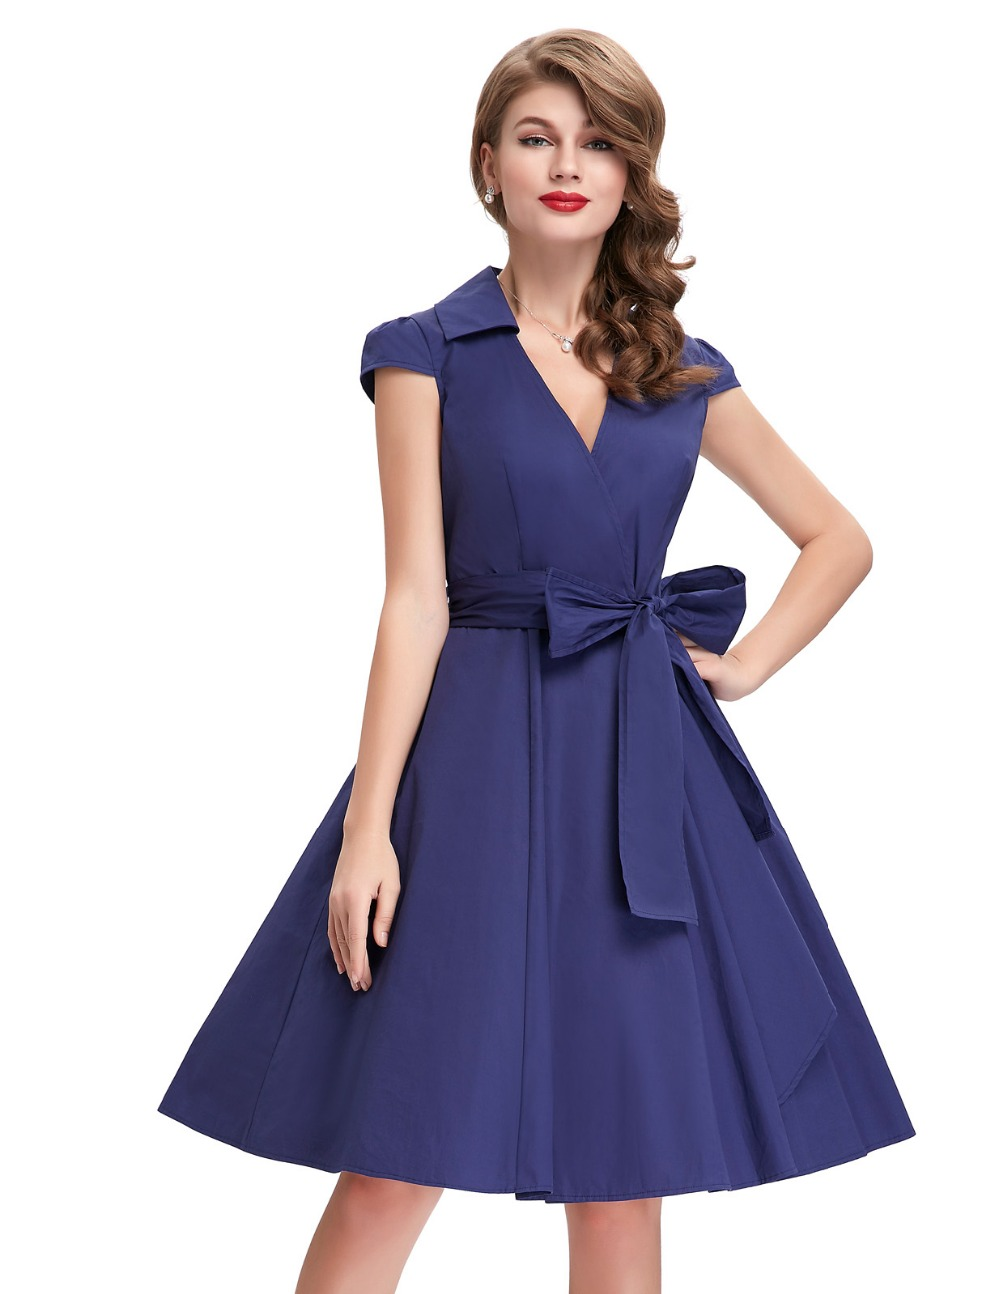 Wonderful KETTYMORE WOMENS ELEGANT LONG LENGTH PLEATED SKIRT STYLE DRESS BLUE - Kettymore